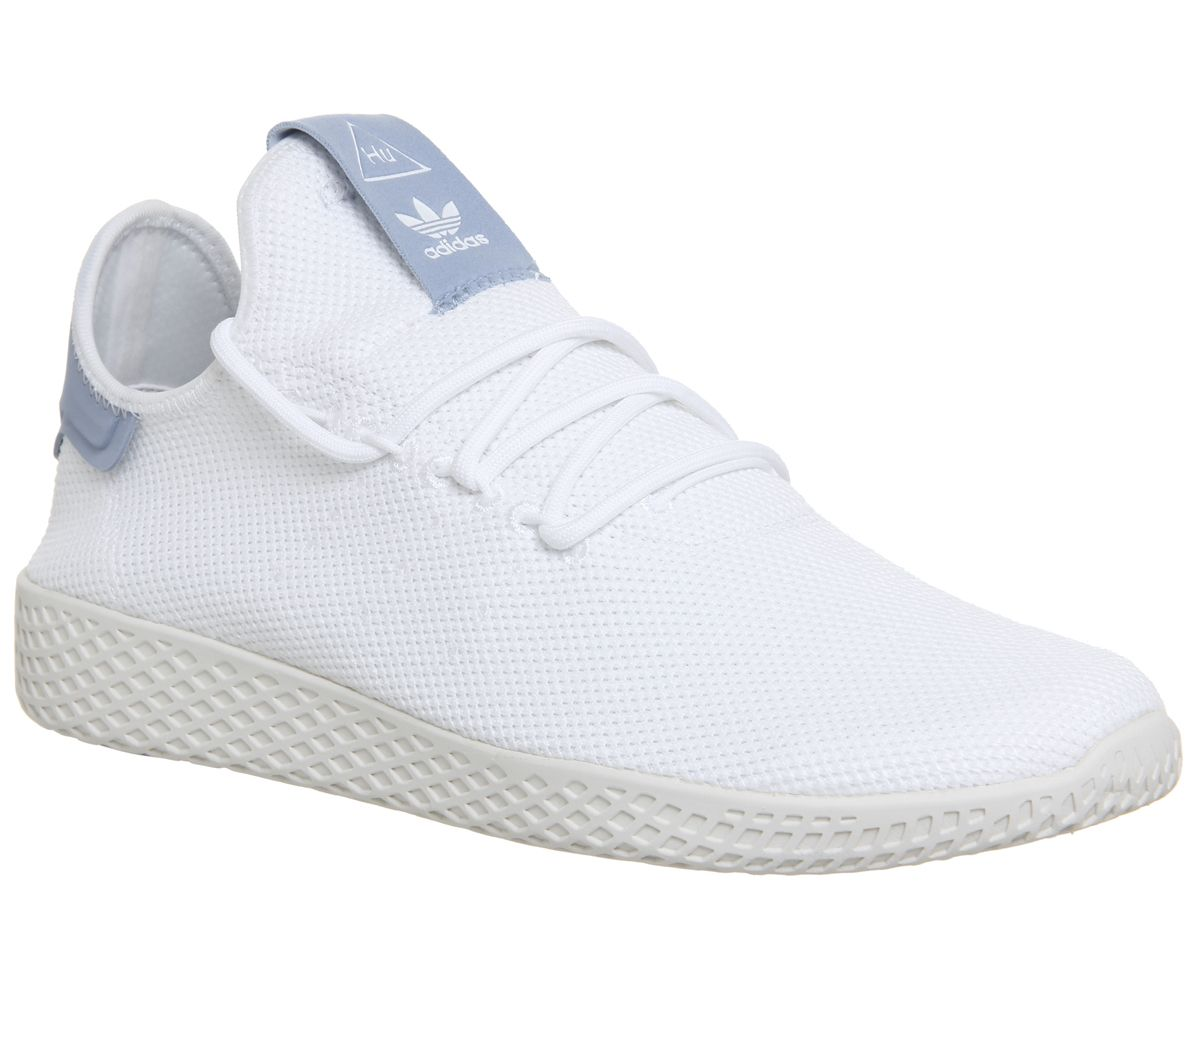 d4bb1739c0b1d adidas Pw Tennis Hu White White Blue - Unisex Sports